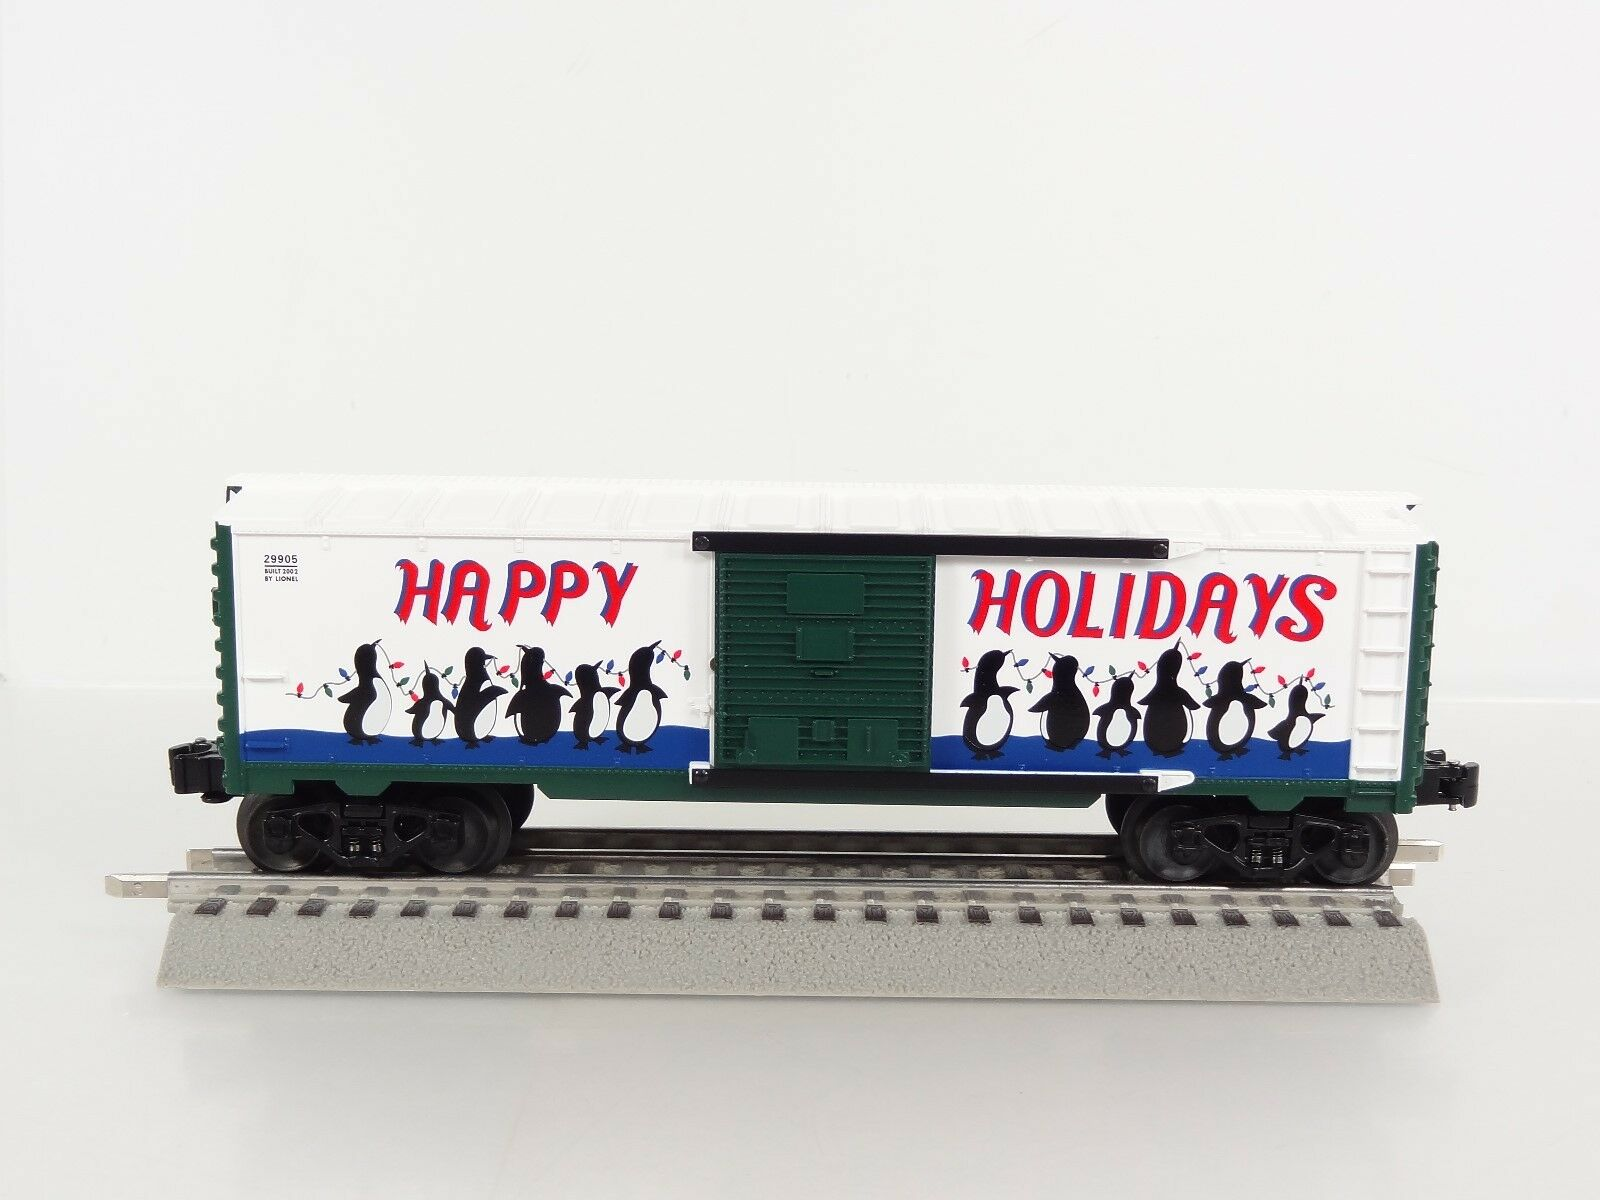 Lionel O Scale 2002 Employee Christmas Box Car Item 6-29905 Rare Offering